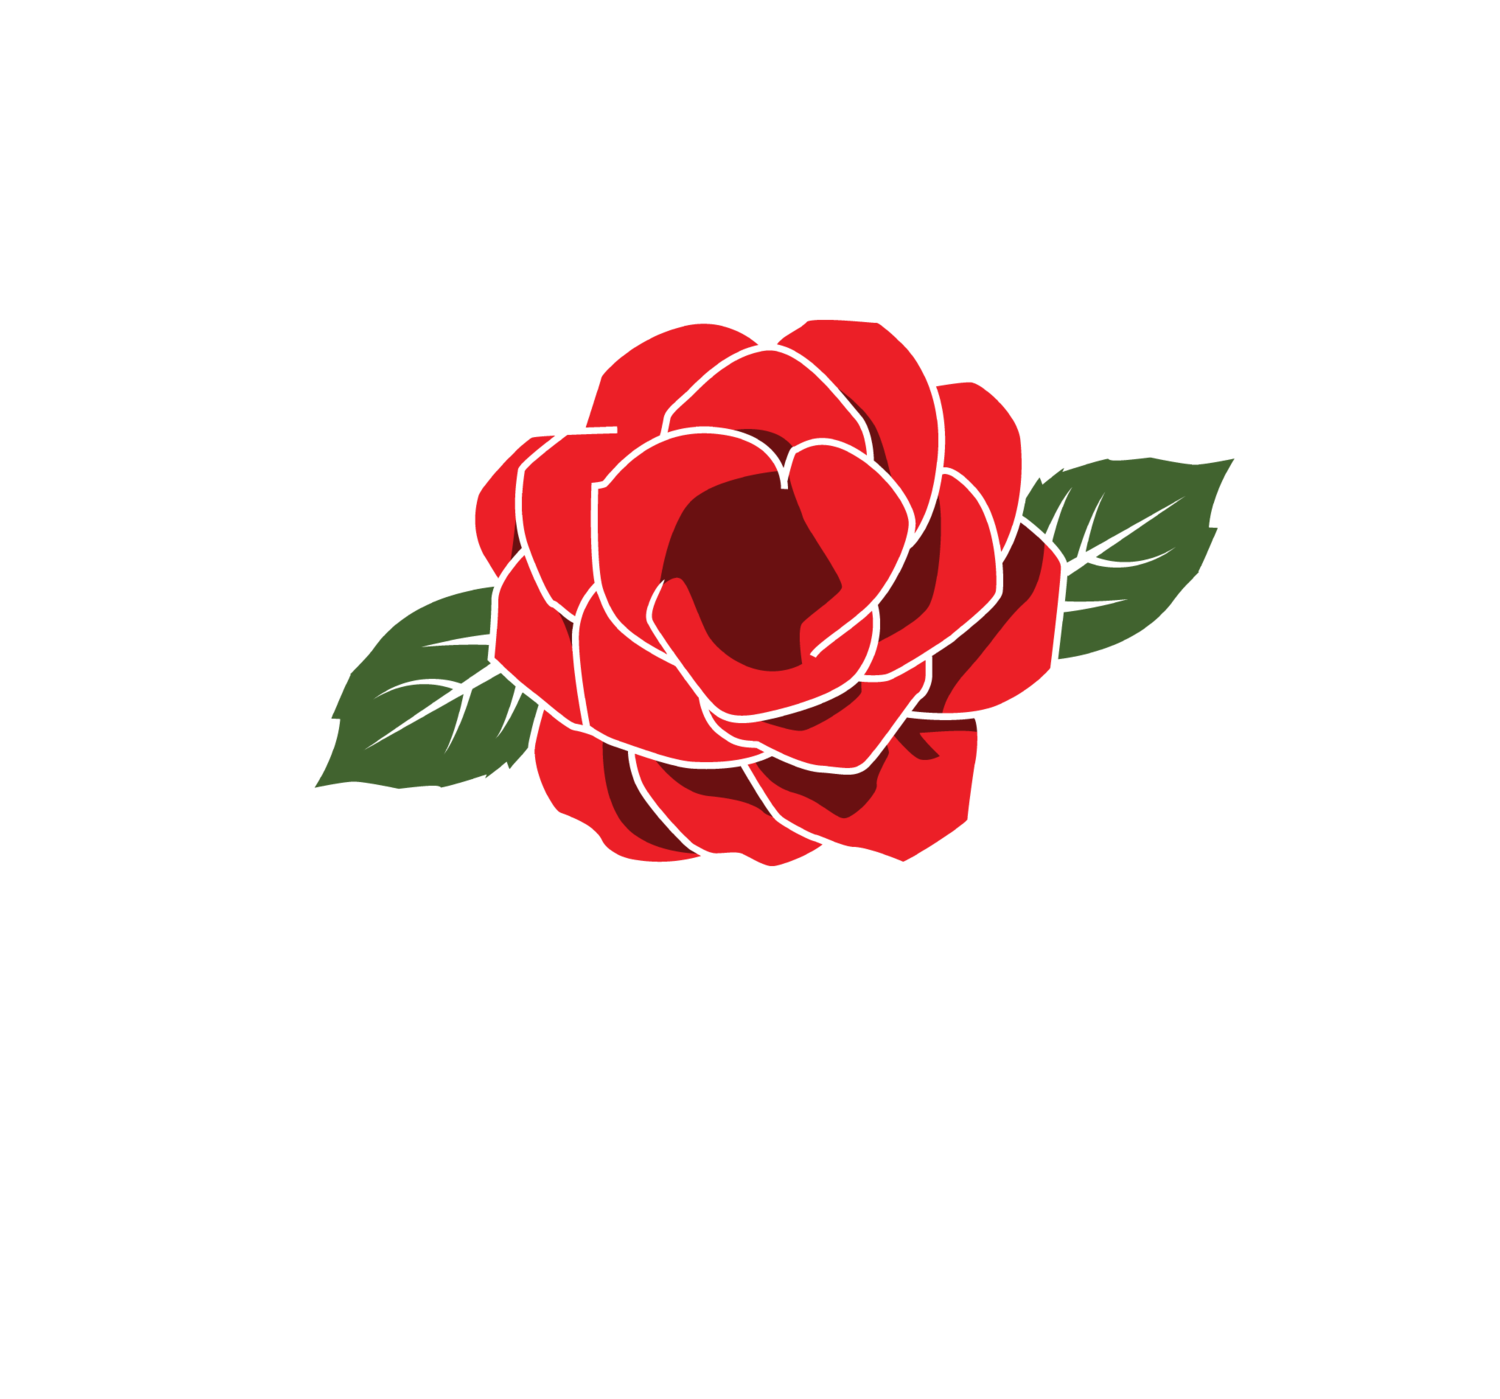 Eighty8 and Rose